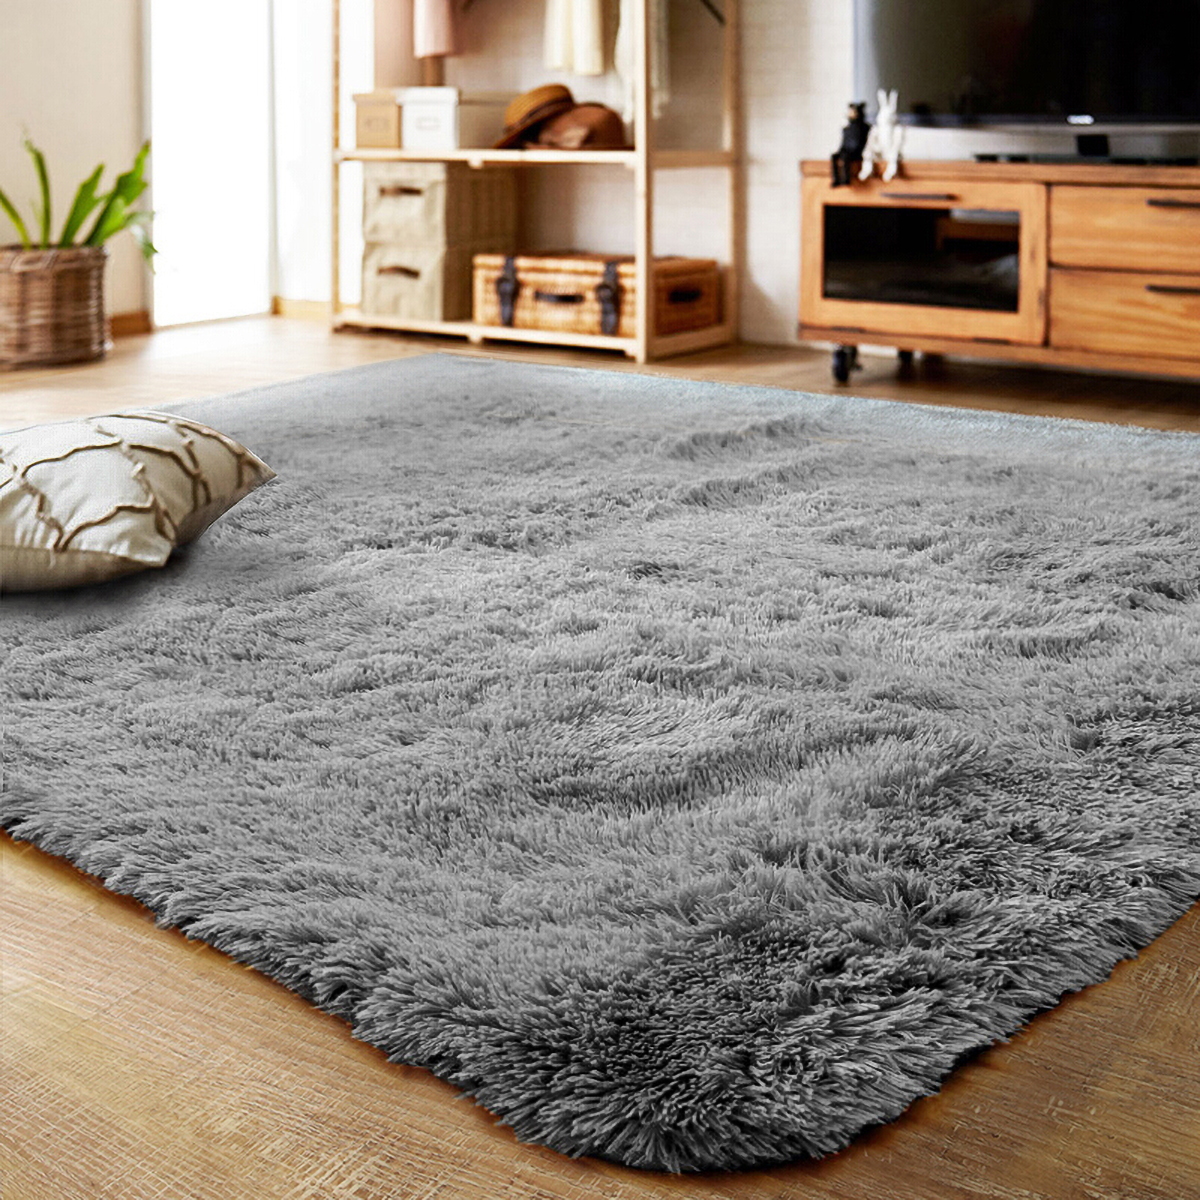 Lochas Ultra Soft Indoor Modern Area Rugs Fluffy Living